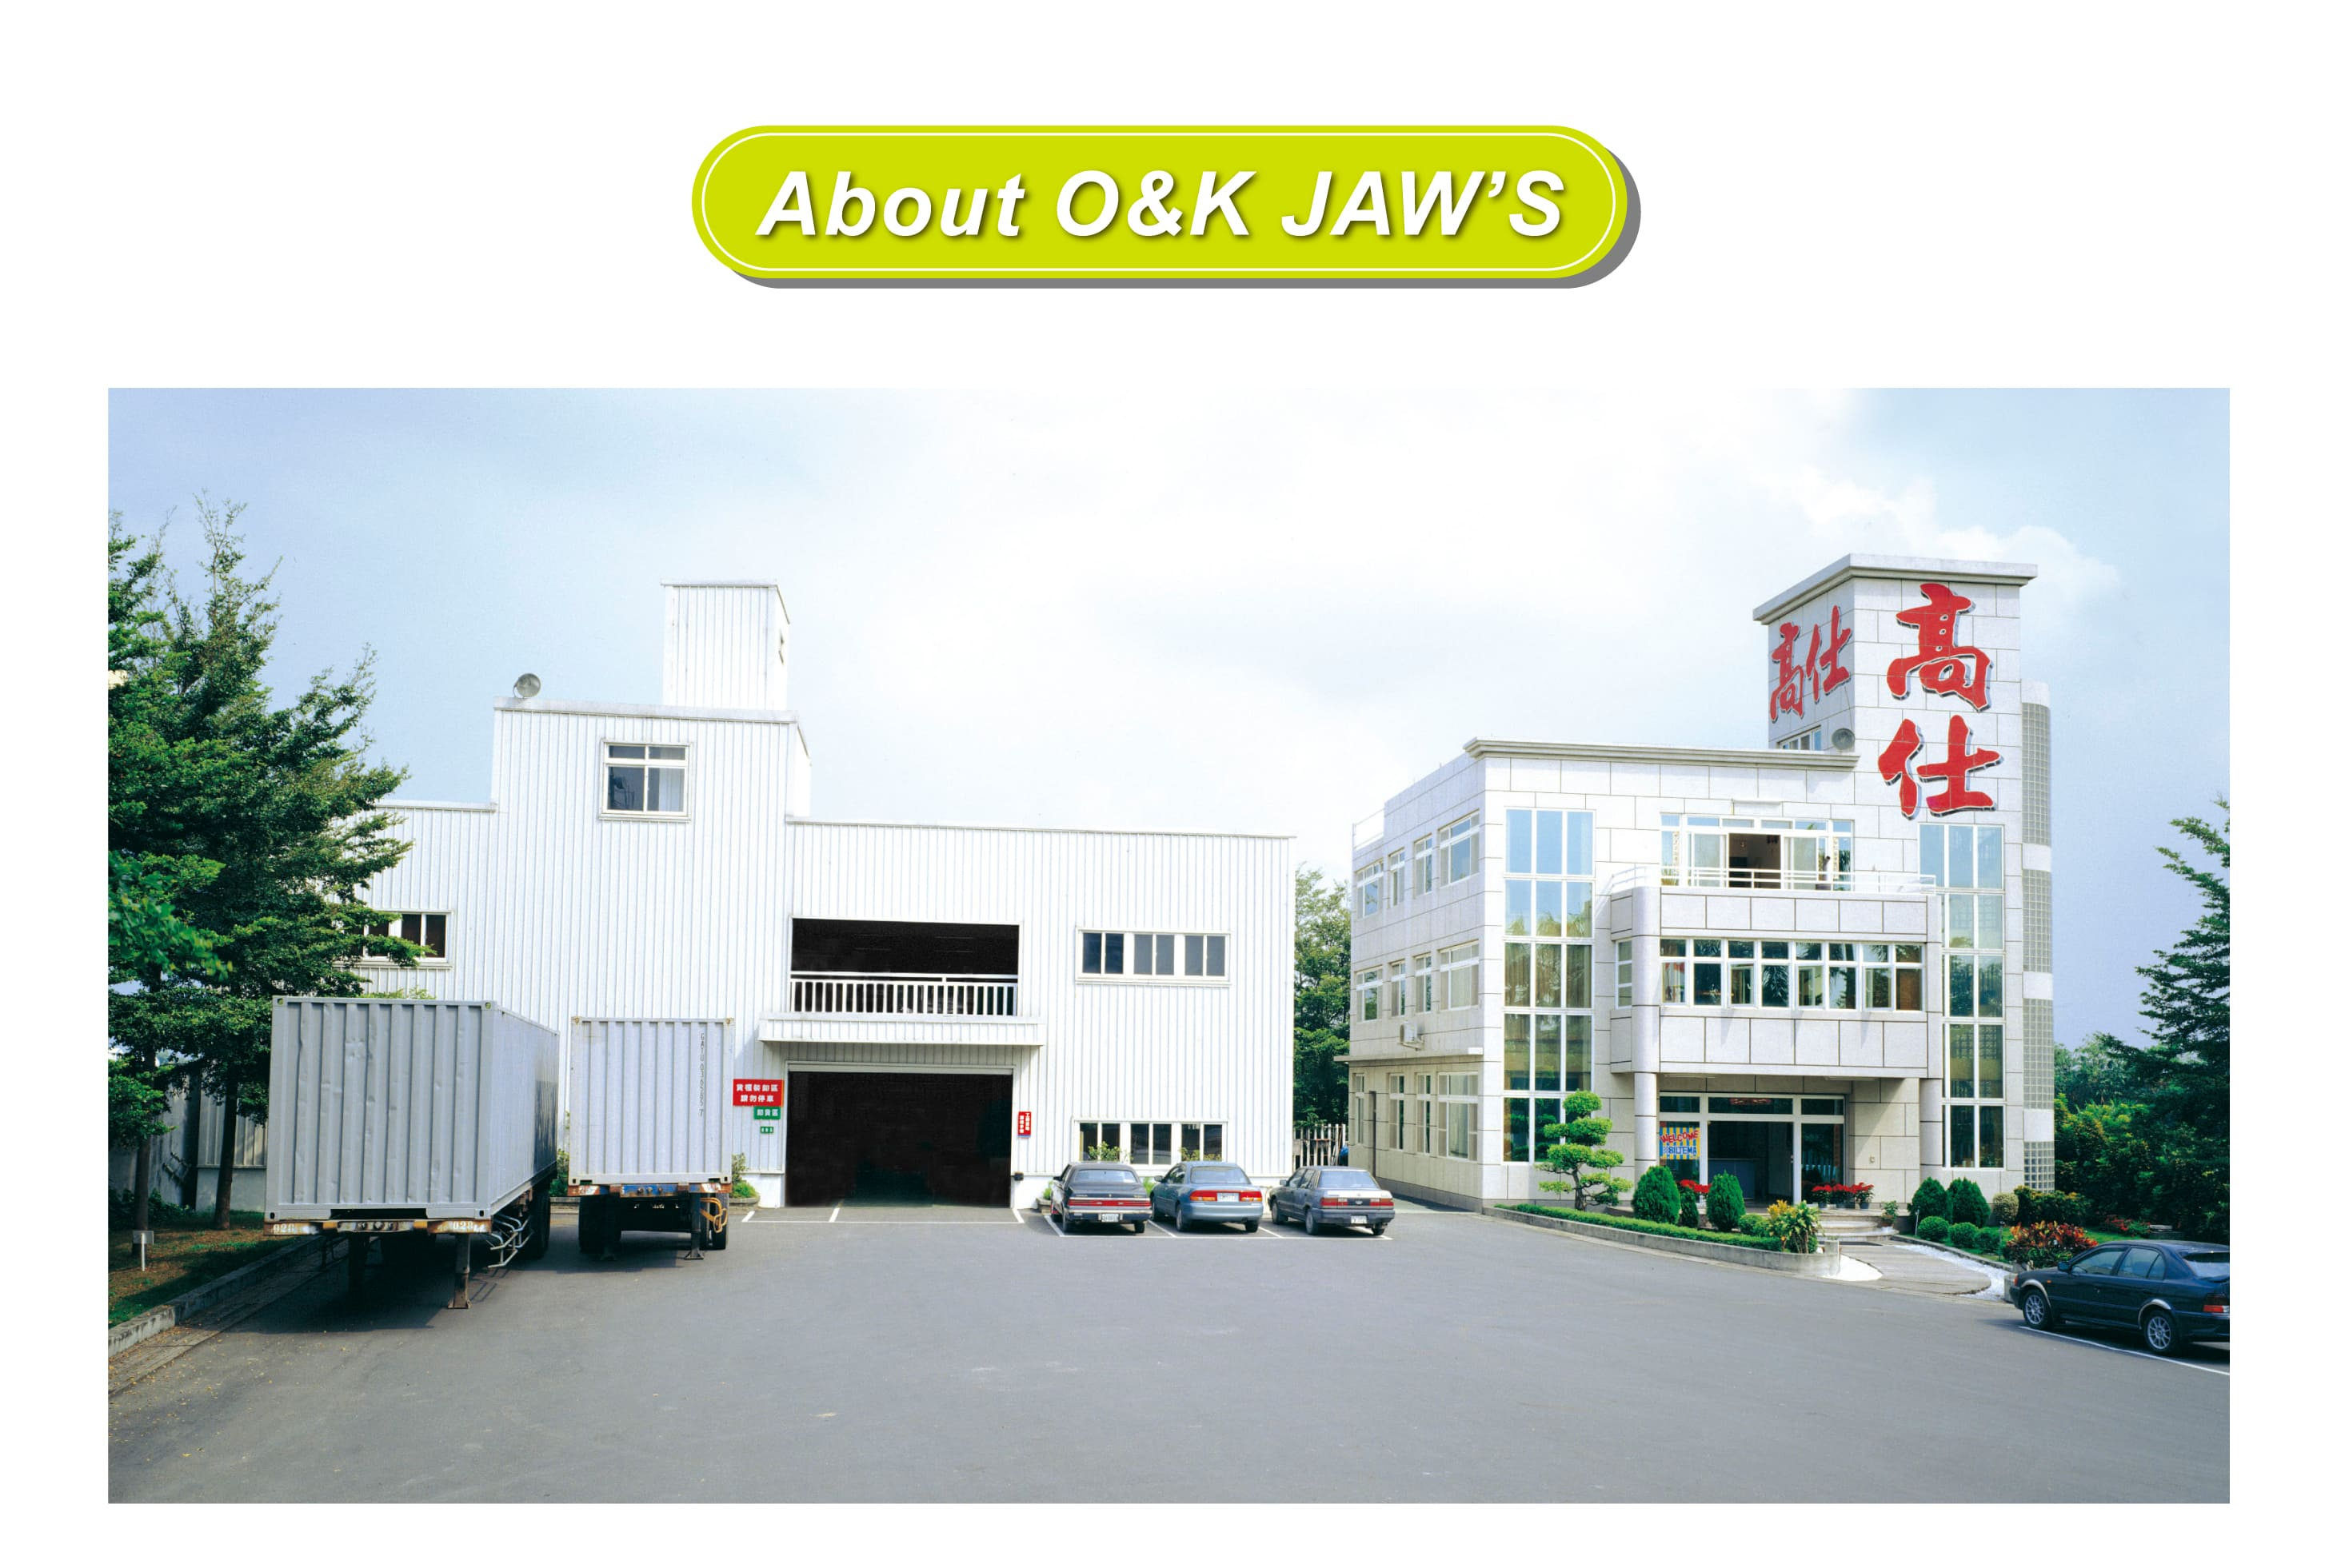 O & K JAWS CO. LTD. is founded in 1976 located in Taiwan, Hypersonic is our brand. All products make in Taiwan. O&K is one of the leading manufacturers in the Asian market that specializes in R&D, manufacturing, sales and OEM&ODM services for car accessories ( cell phone holder, Led light, hanger, antenna, blind spot mirror, USB car charger and power socket, etc.   40 years presence in the market substantiates O&K's continuous growth.  O&K has significantly expanded over the years. At present, Our company with an annual production capacity of 200,000 pieces and export to all over the world.